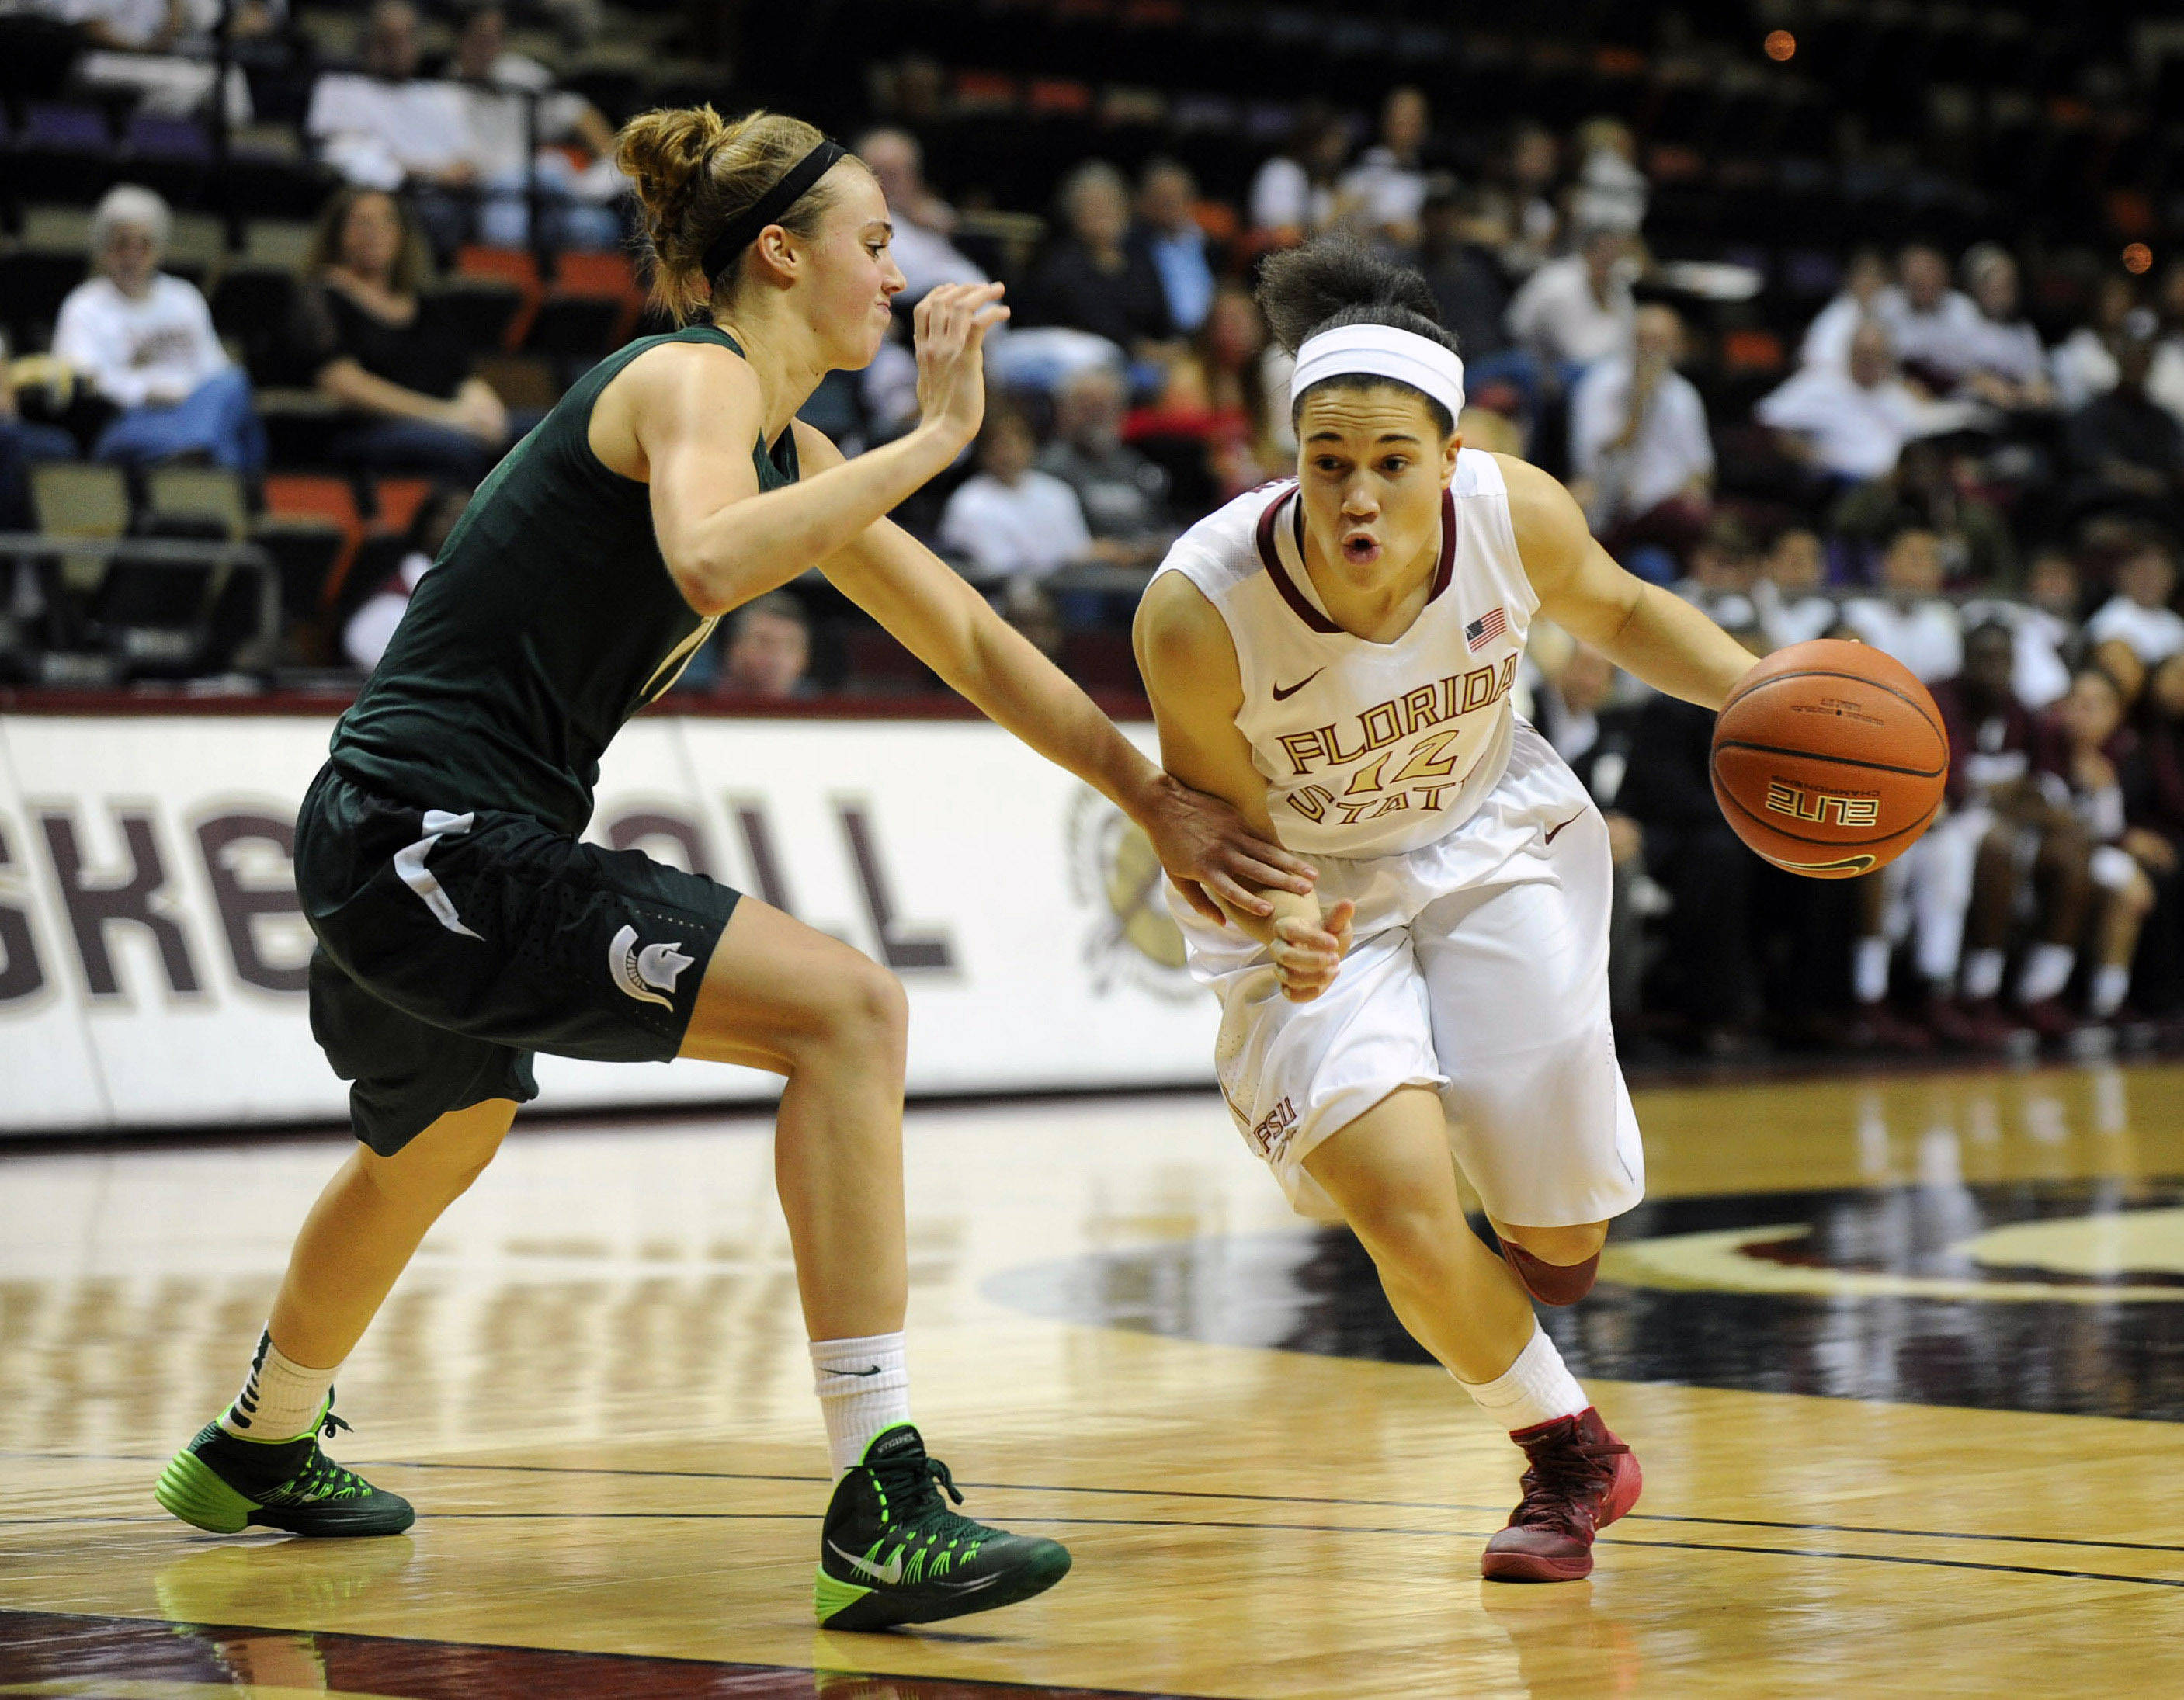 Dec 4, 2013; Tallahassee, FL, USA; Florida State Seminoles guard Brittany Brown (12) moves past Michigan State Spartans forward Annalise Pickrel (11) during the game at the Donald L. Tucker Center. Mandatory Credit: Melina Vastola-USA TODAY Sports